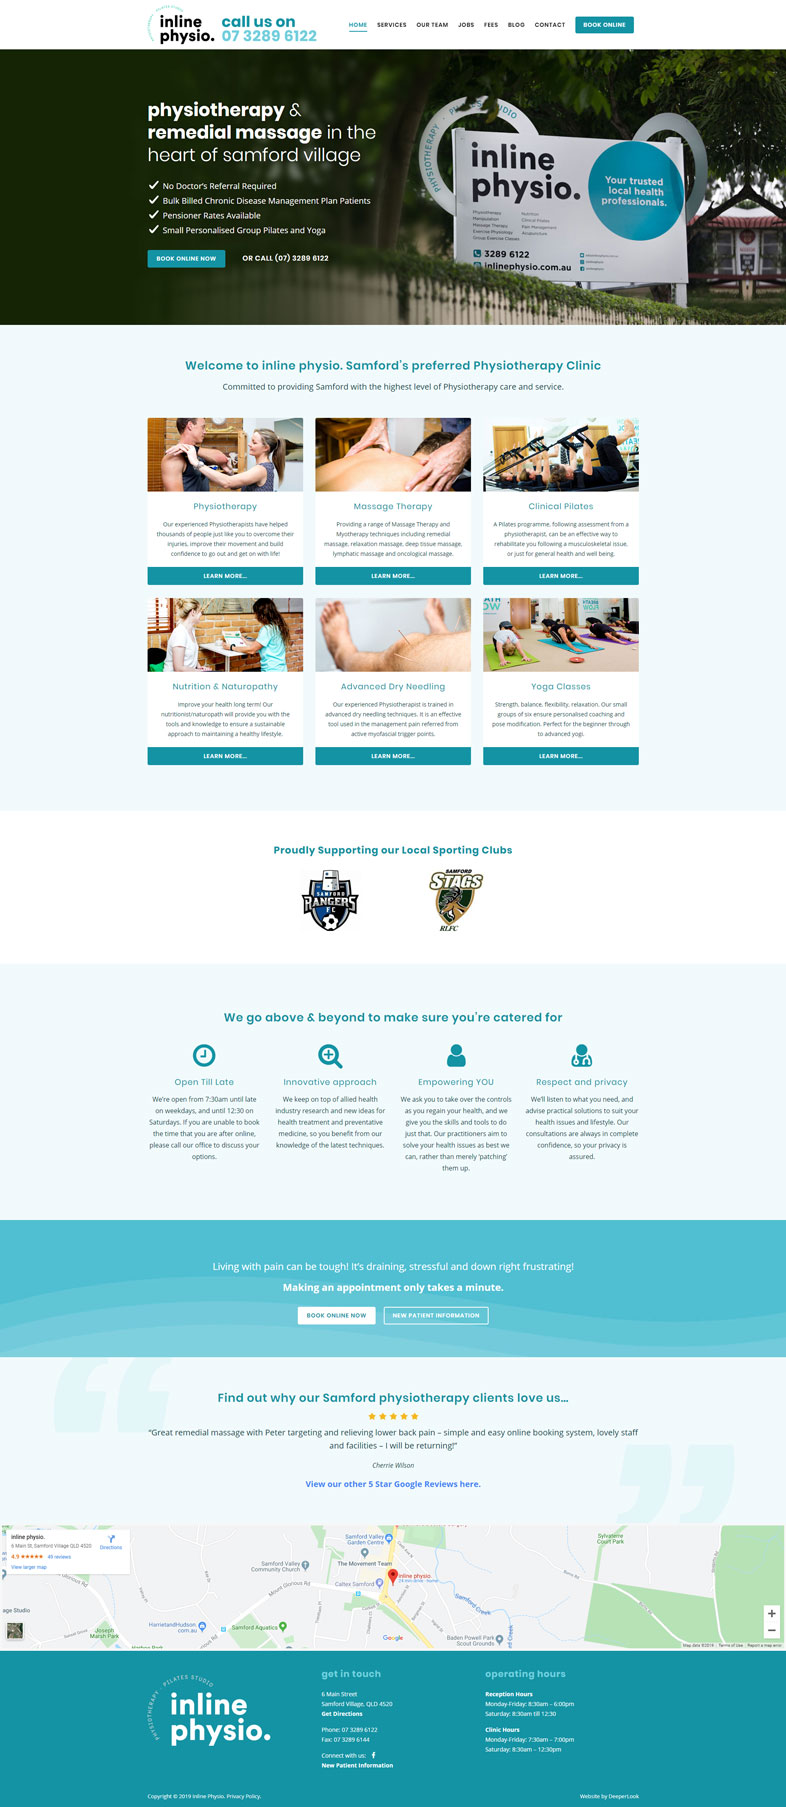 Inline Physio's website design of the homepage